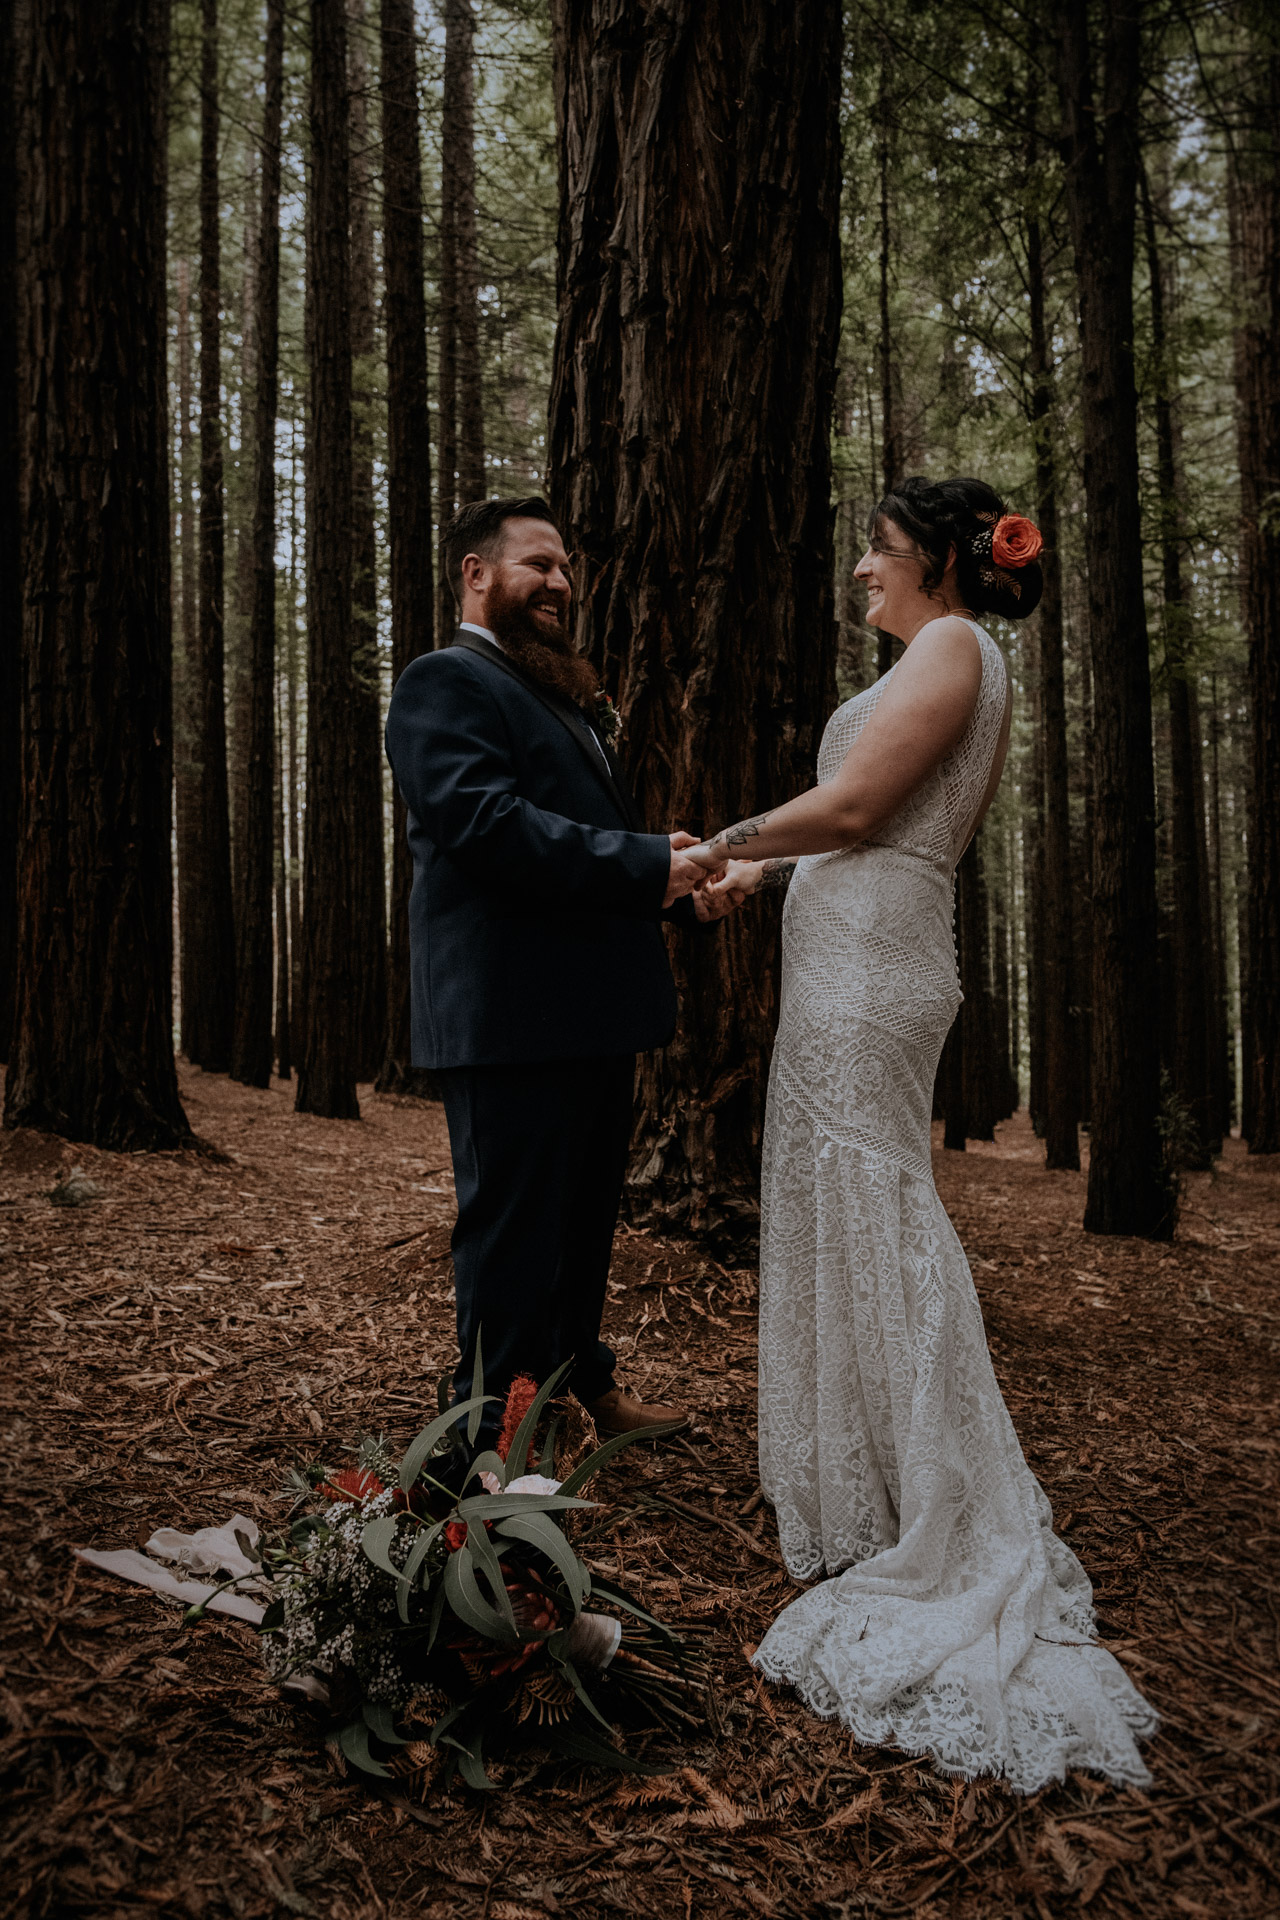 A bride and groom holding hands at their small wedding, candidly captured with intimate vibes, in the Redwood Forest in Warburton, near Melbourne